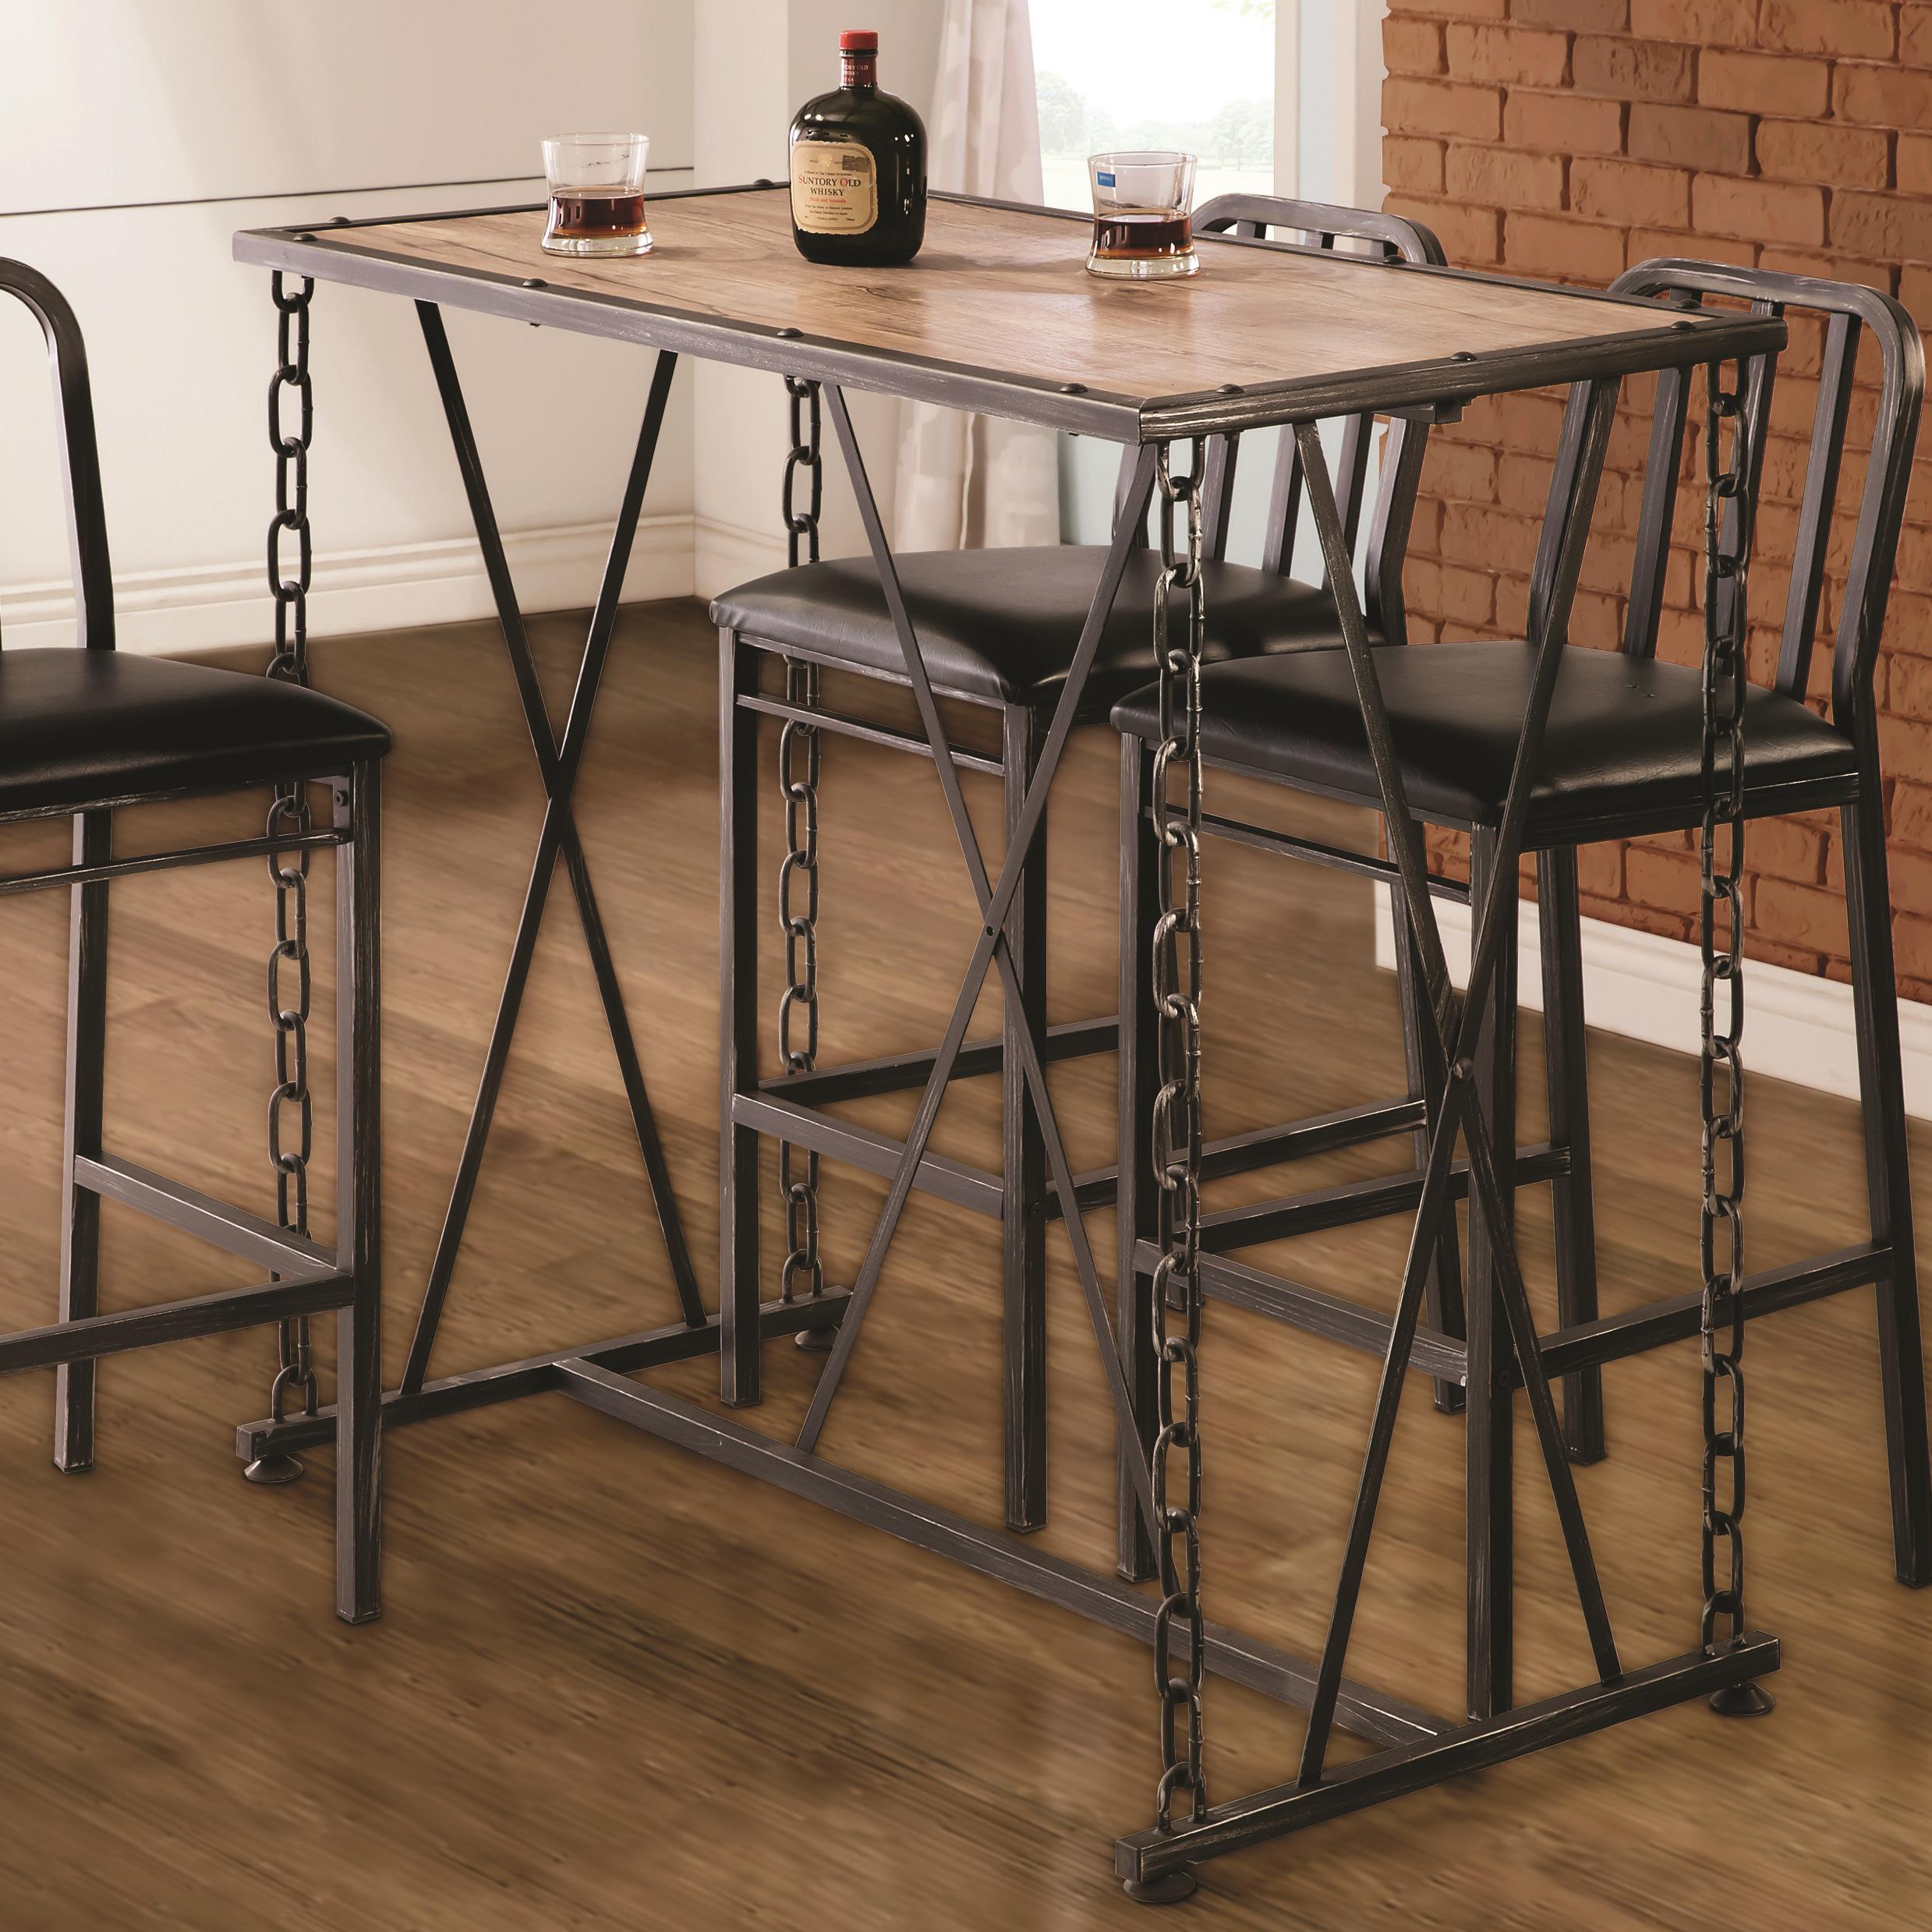 10069 Rustic Industrial Chain Link Bar Table Quality